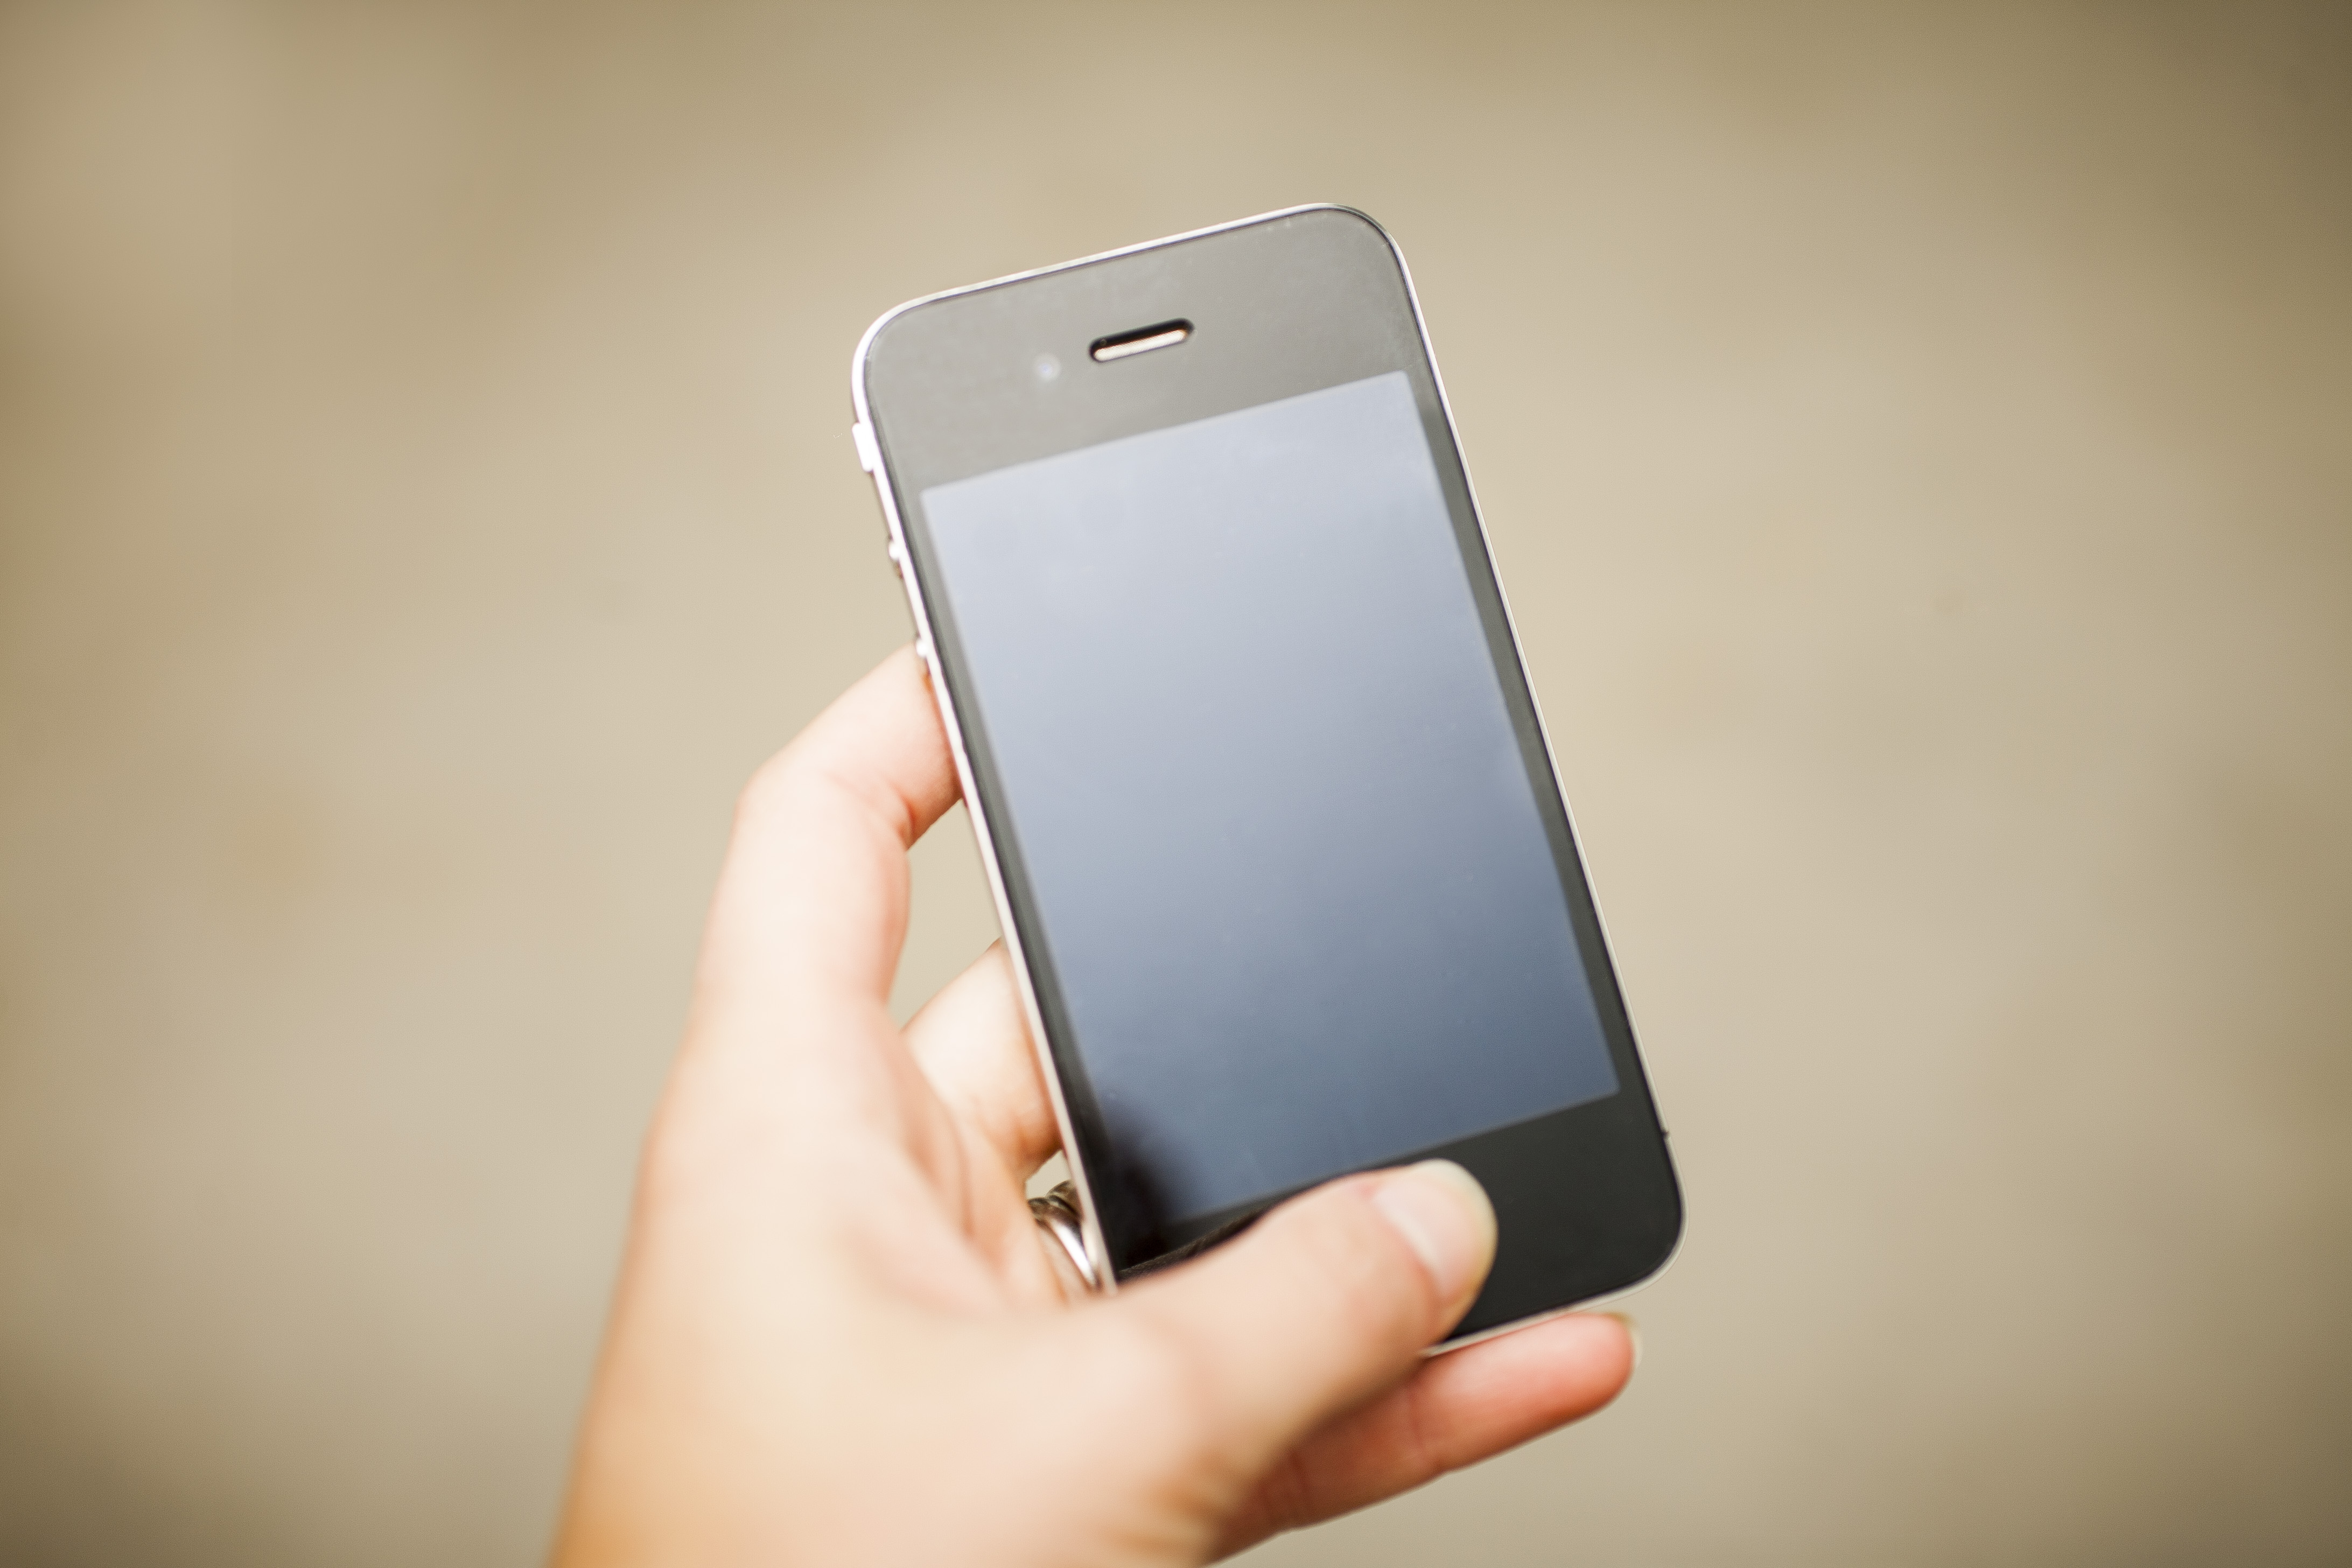 Picture of a cell phone to demonstrate the digital customer experience.